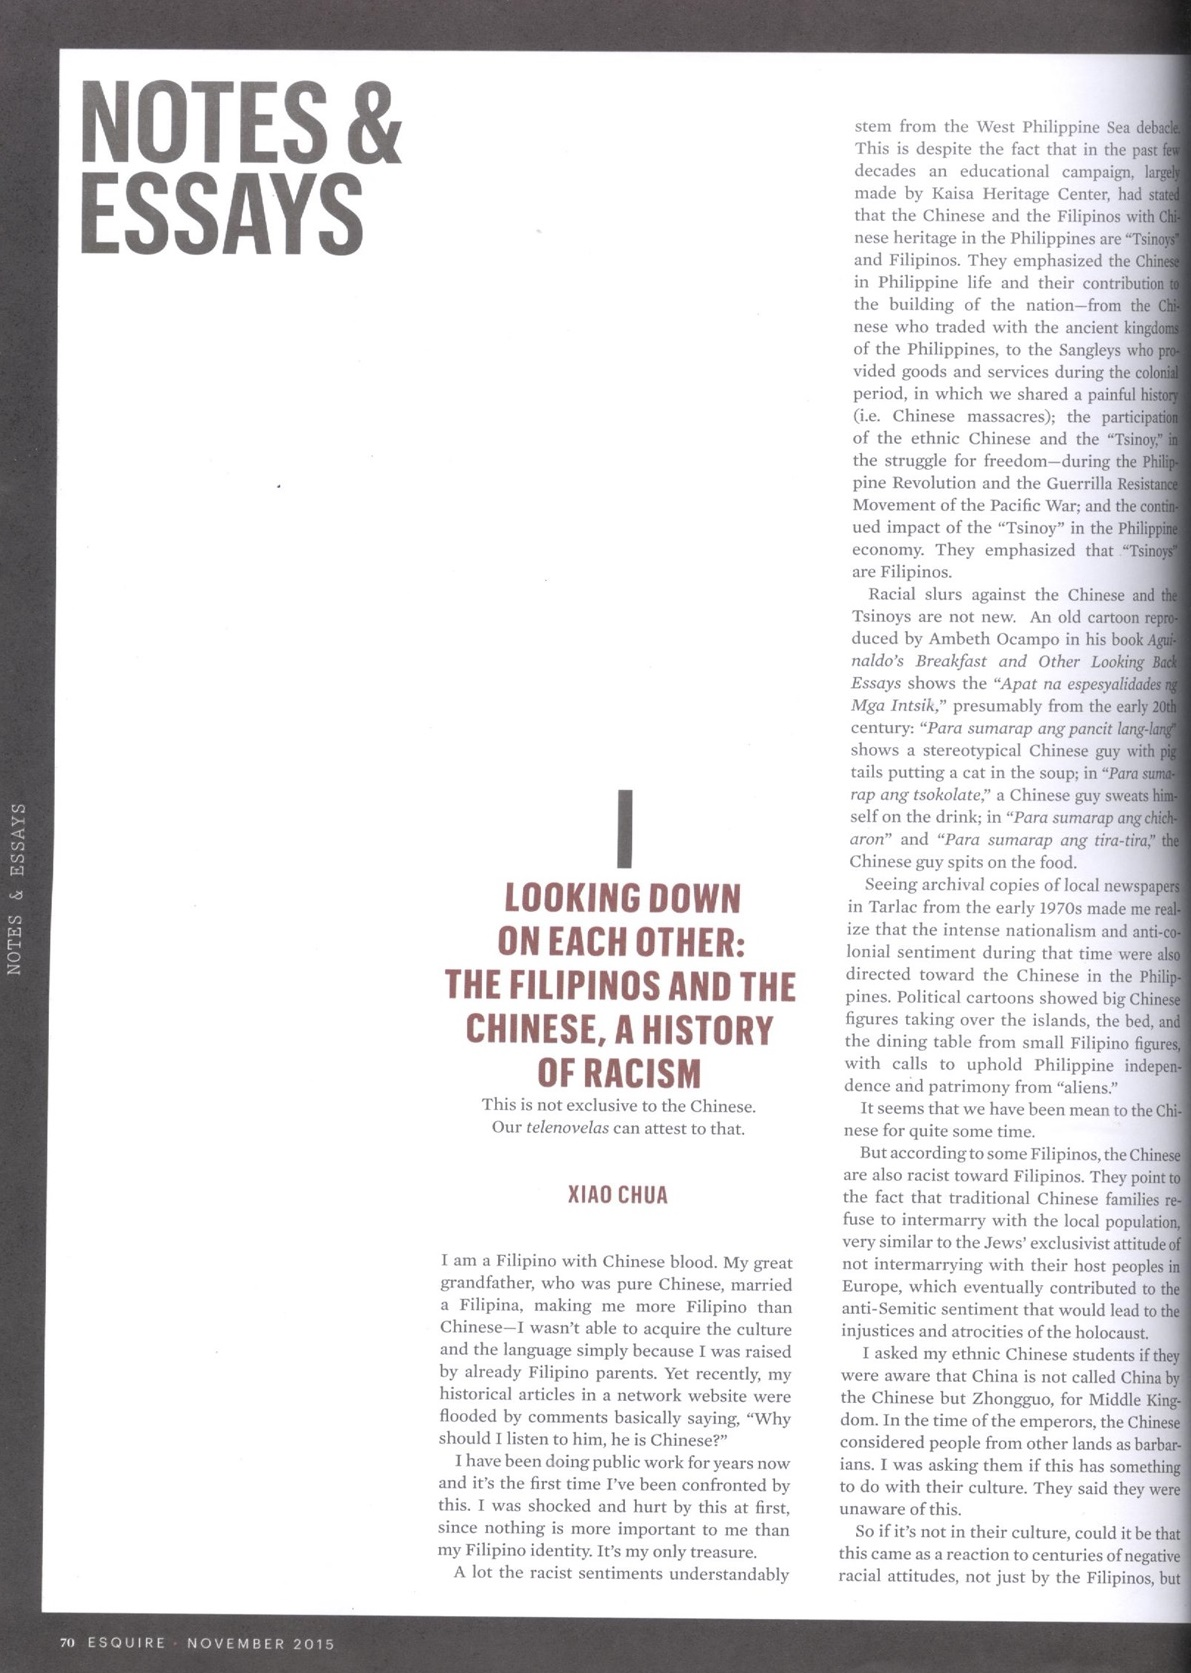 Xiao Chua - Esquire - The Filipinos and the Chinese 02b